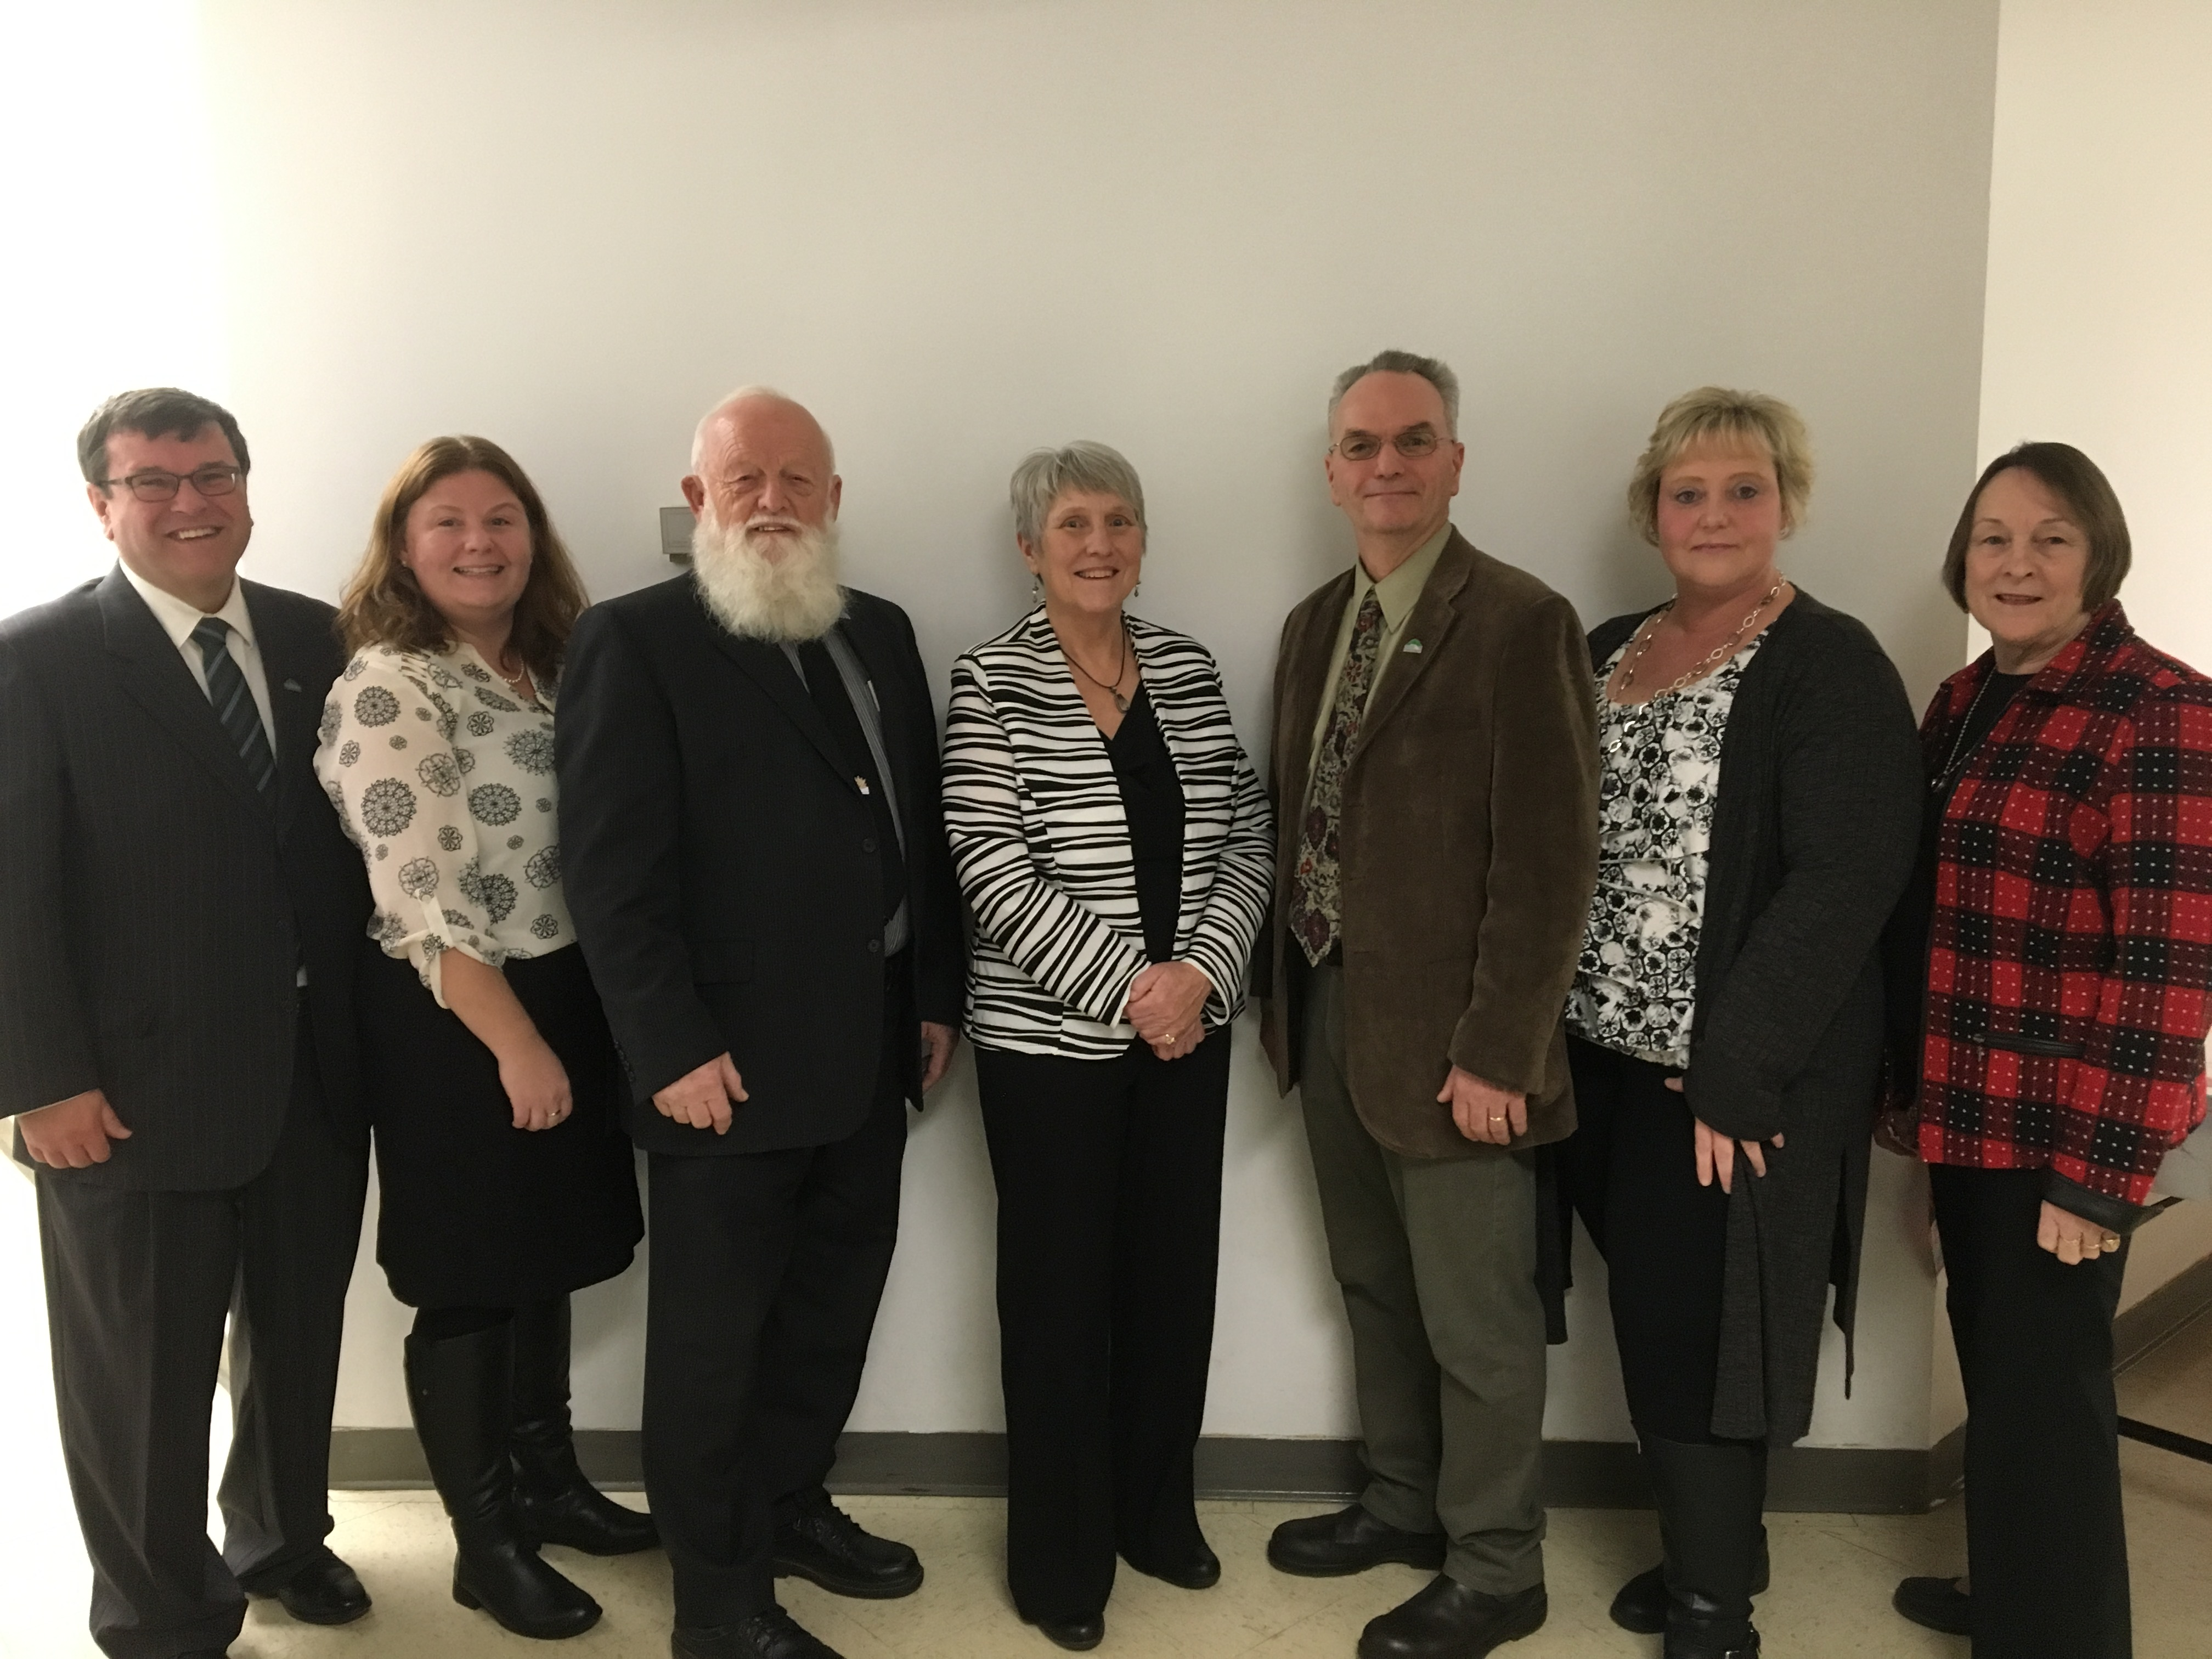 members of Minden Hills Council for the 2018 to 2022 term